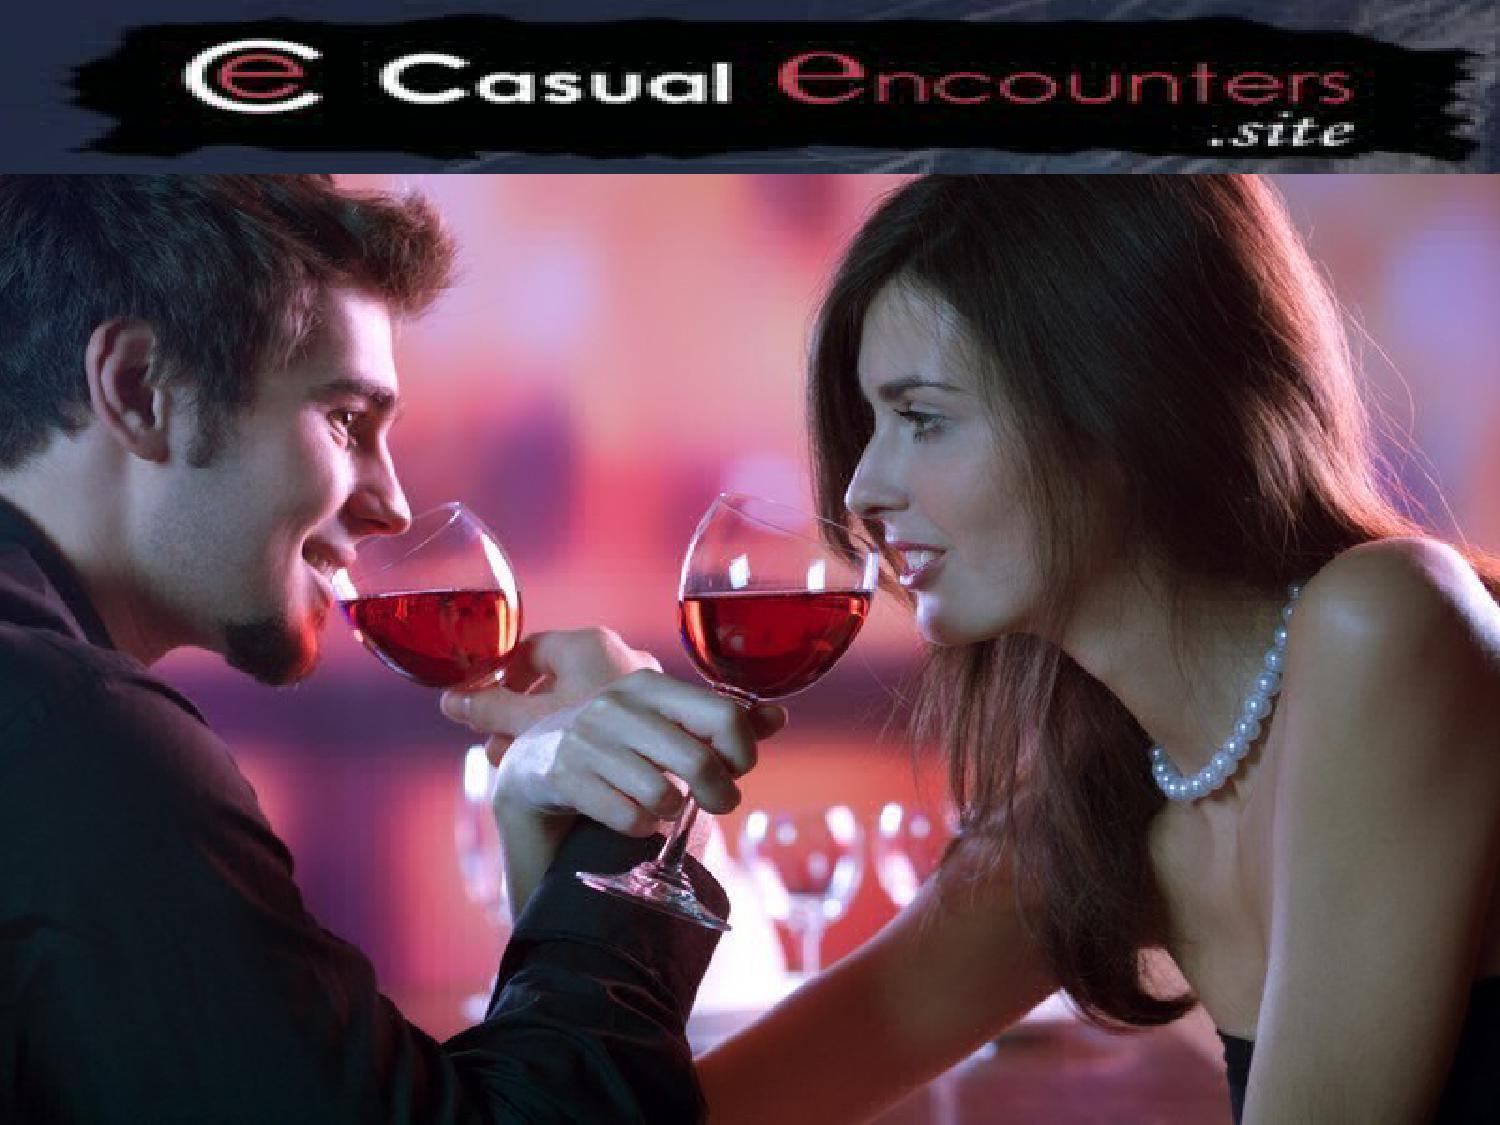 Sites for casual encounters